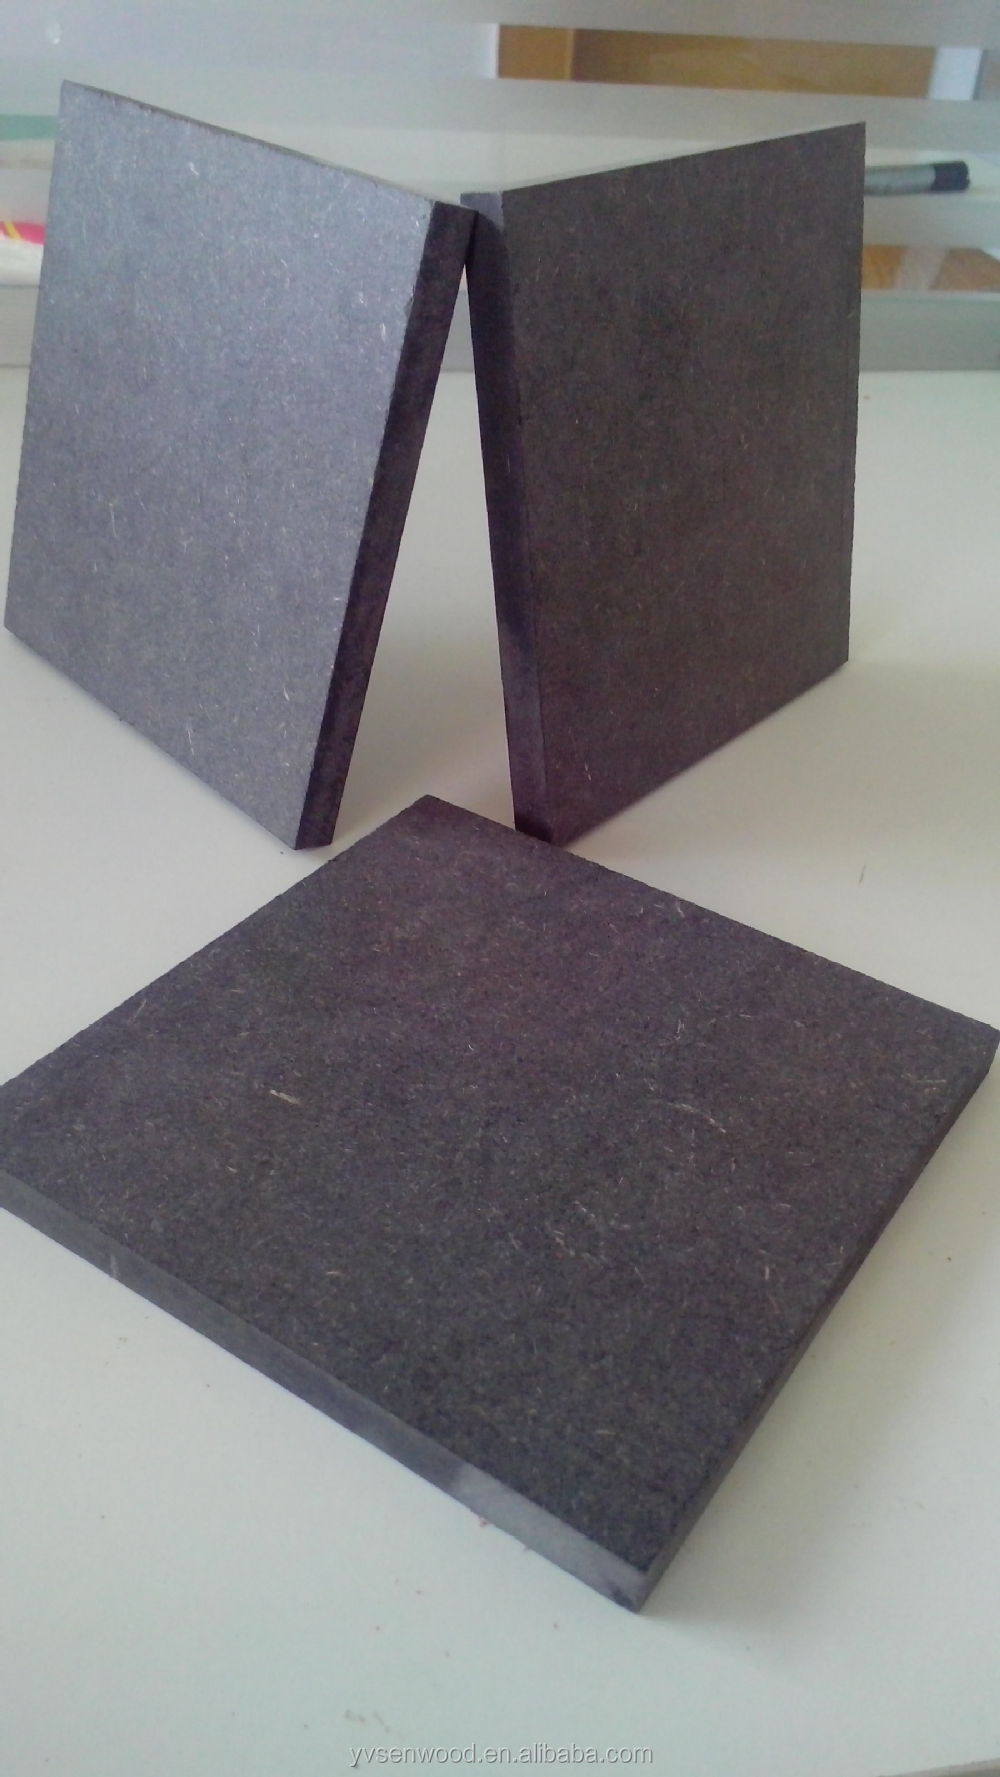 Black Mdf Red Mdf 18mm Buy Black Mdf 18mm Black Mdf